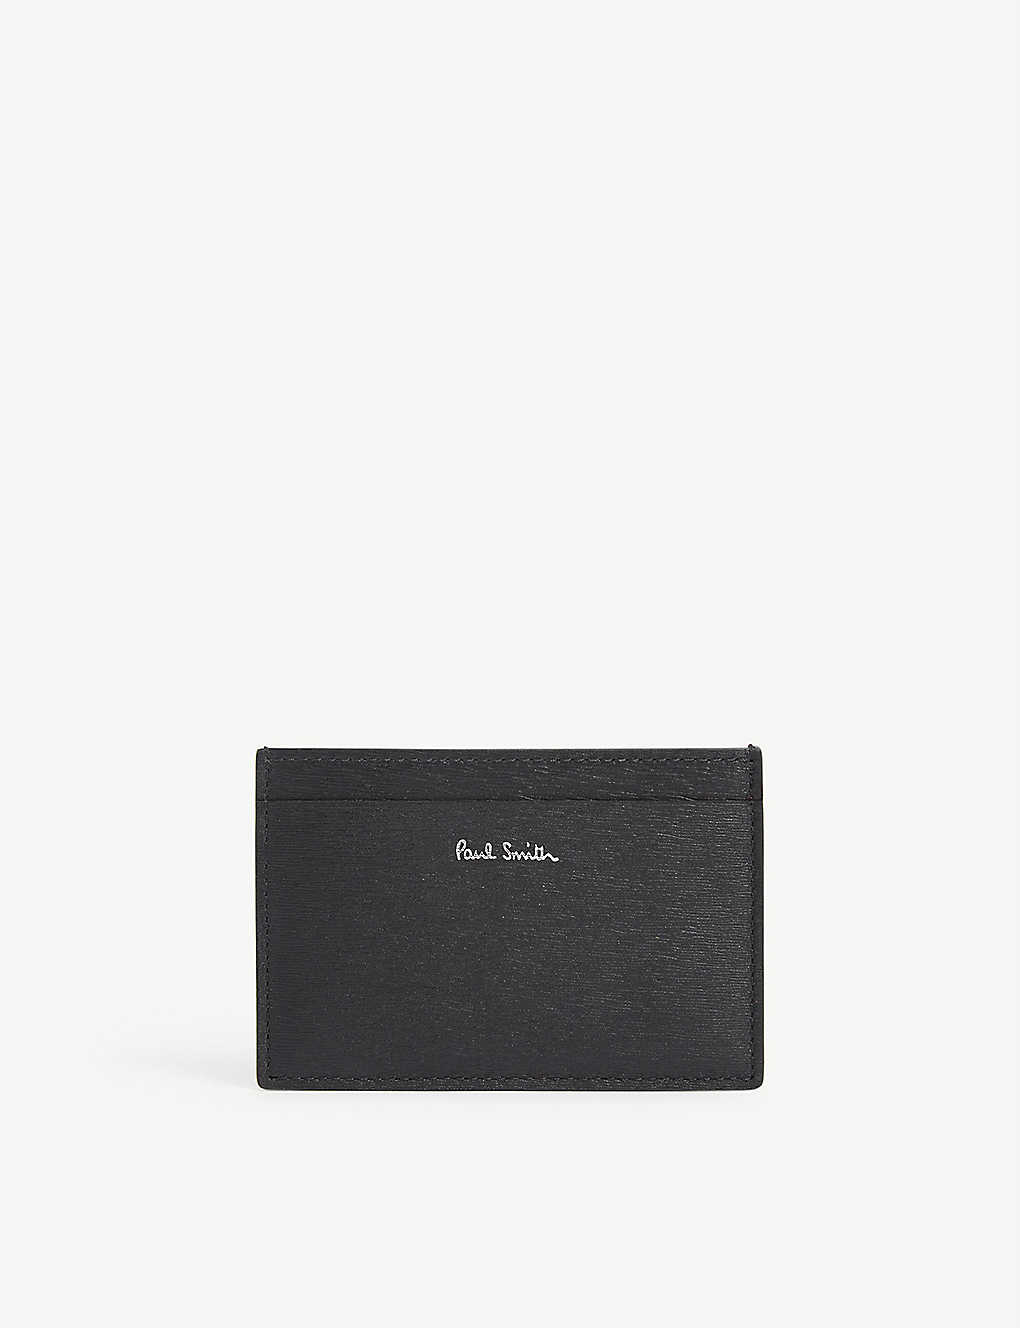 PAUL SMITH ACCESSORIES: Striped leather cardholder